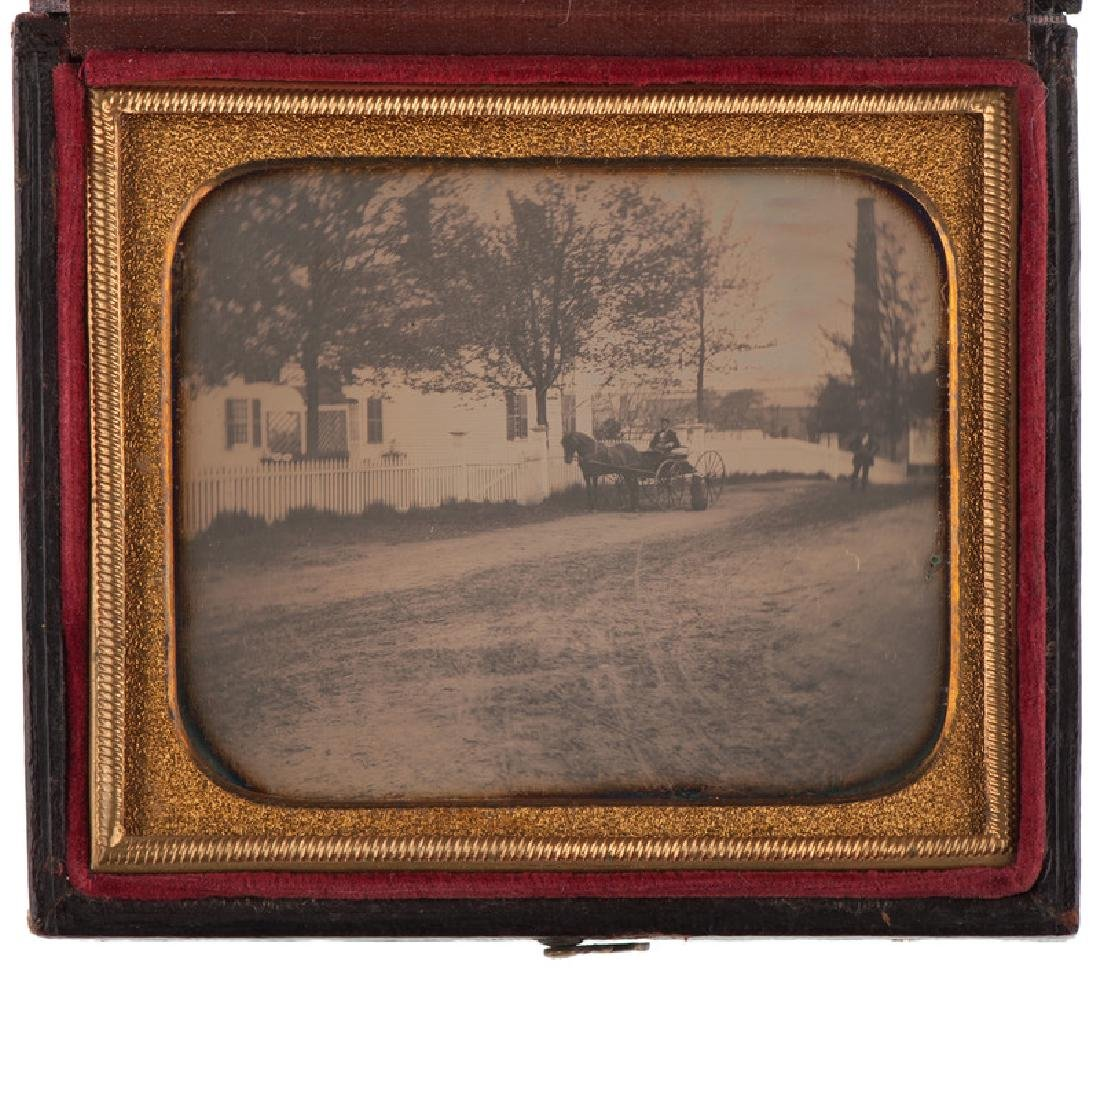 Sixth Plate Outdoor Daguerreotype of Horse and Buggy